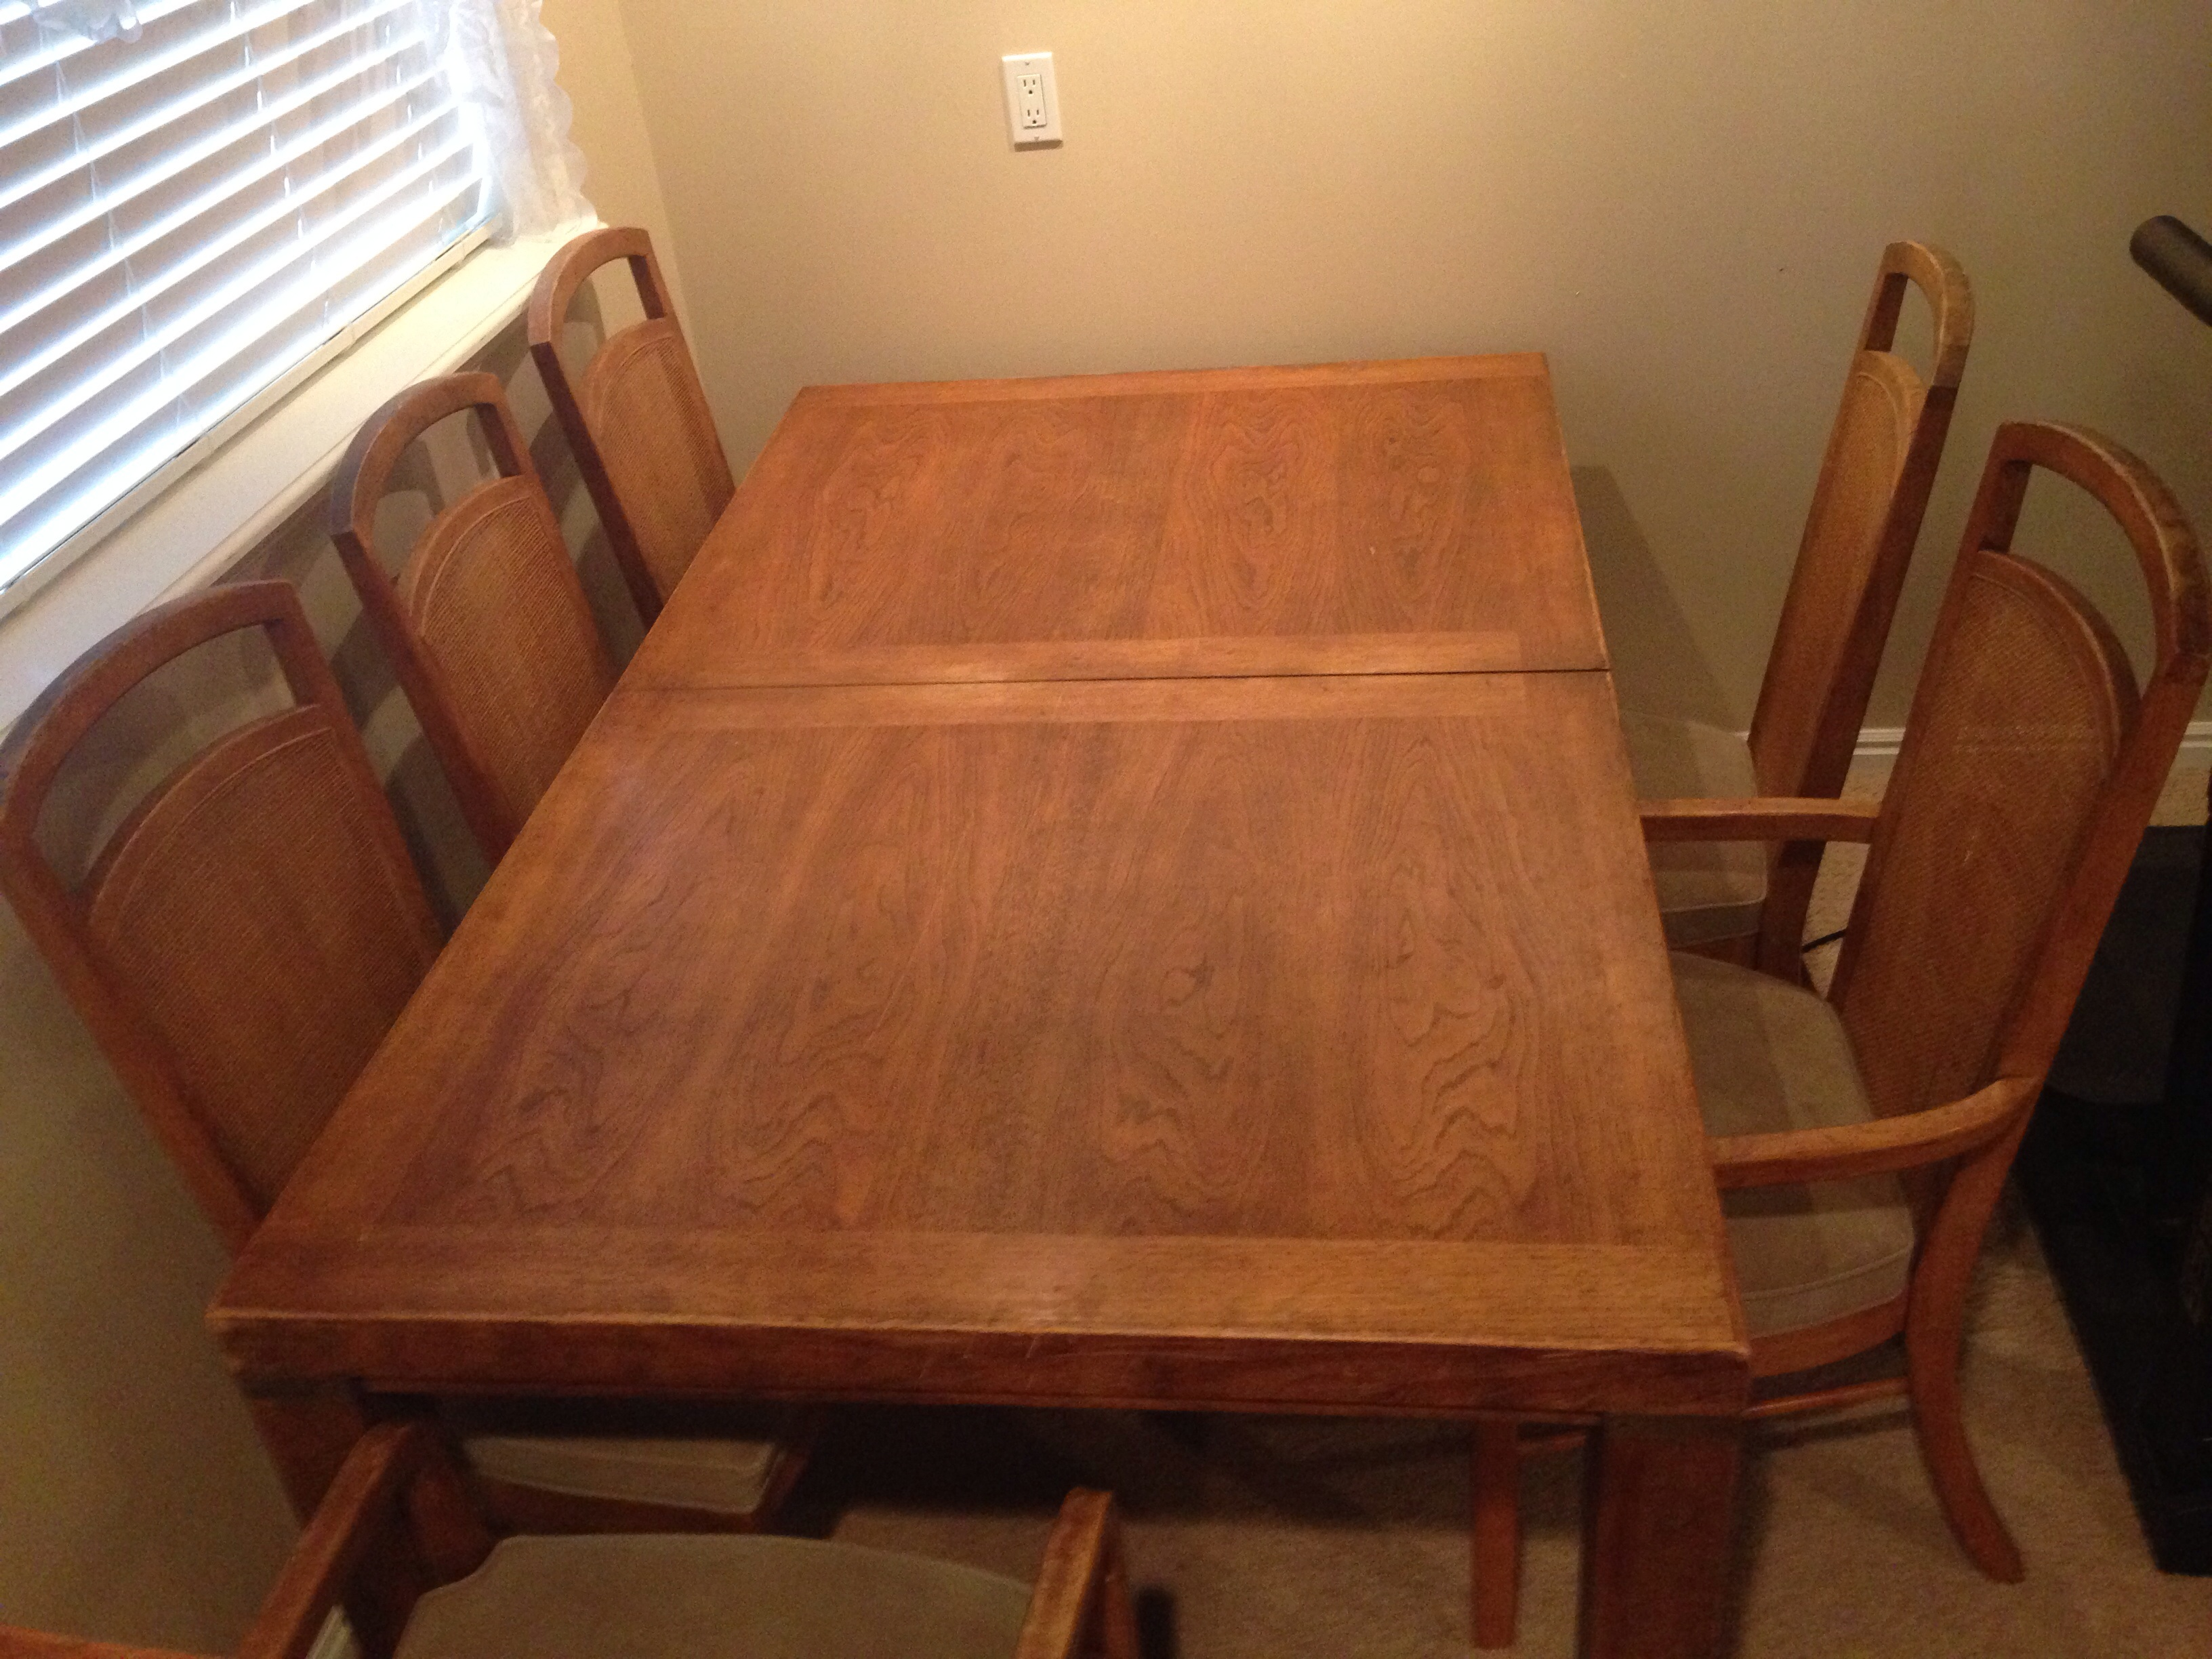 Woodbriar by Drexel Dining Table and Chairs antique appraisal